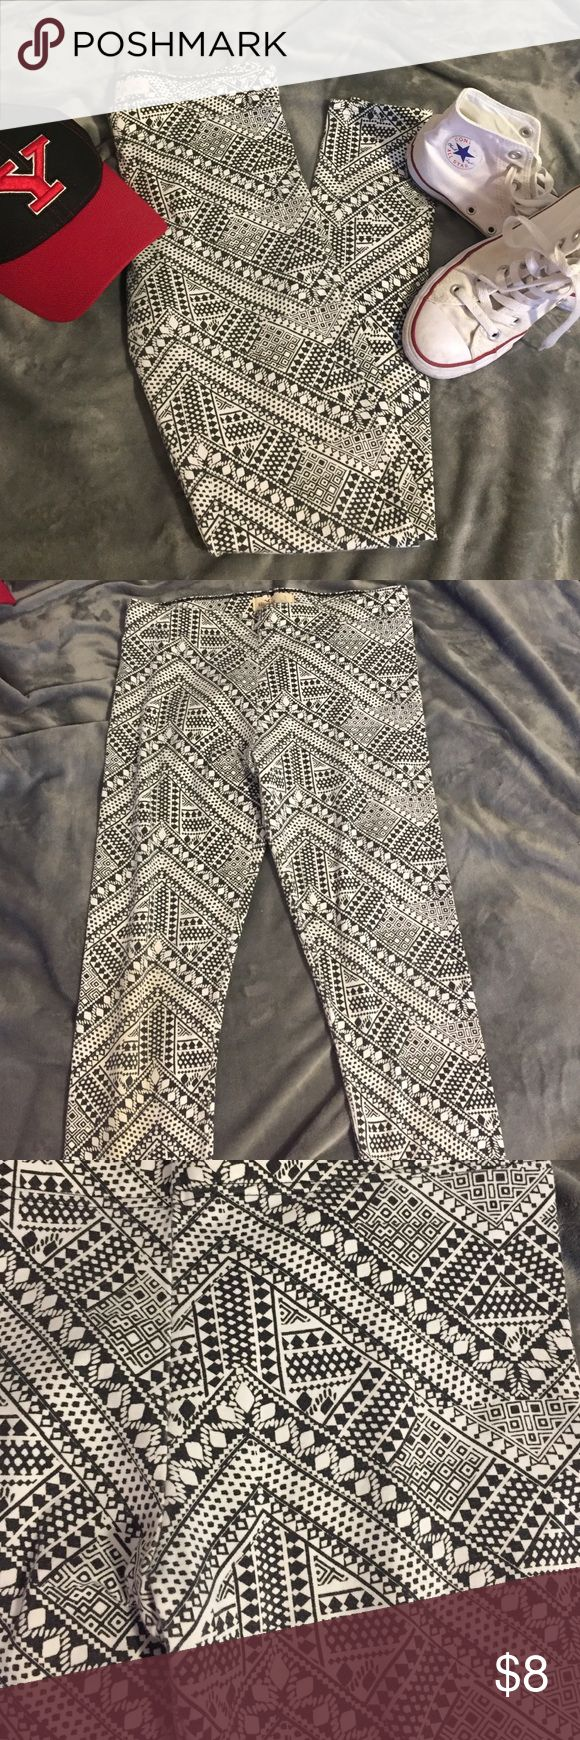 Hollister Tribal Print Leggings Hollister tribal print leggings that are a fashion statement! Cotton leggings that make them super comfy- lightly used with lots of room left for love! only slight sign may be a little fading but it's unnoticeable to me! Hollister Pants Leggings